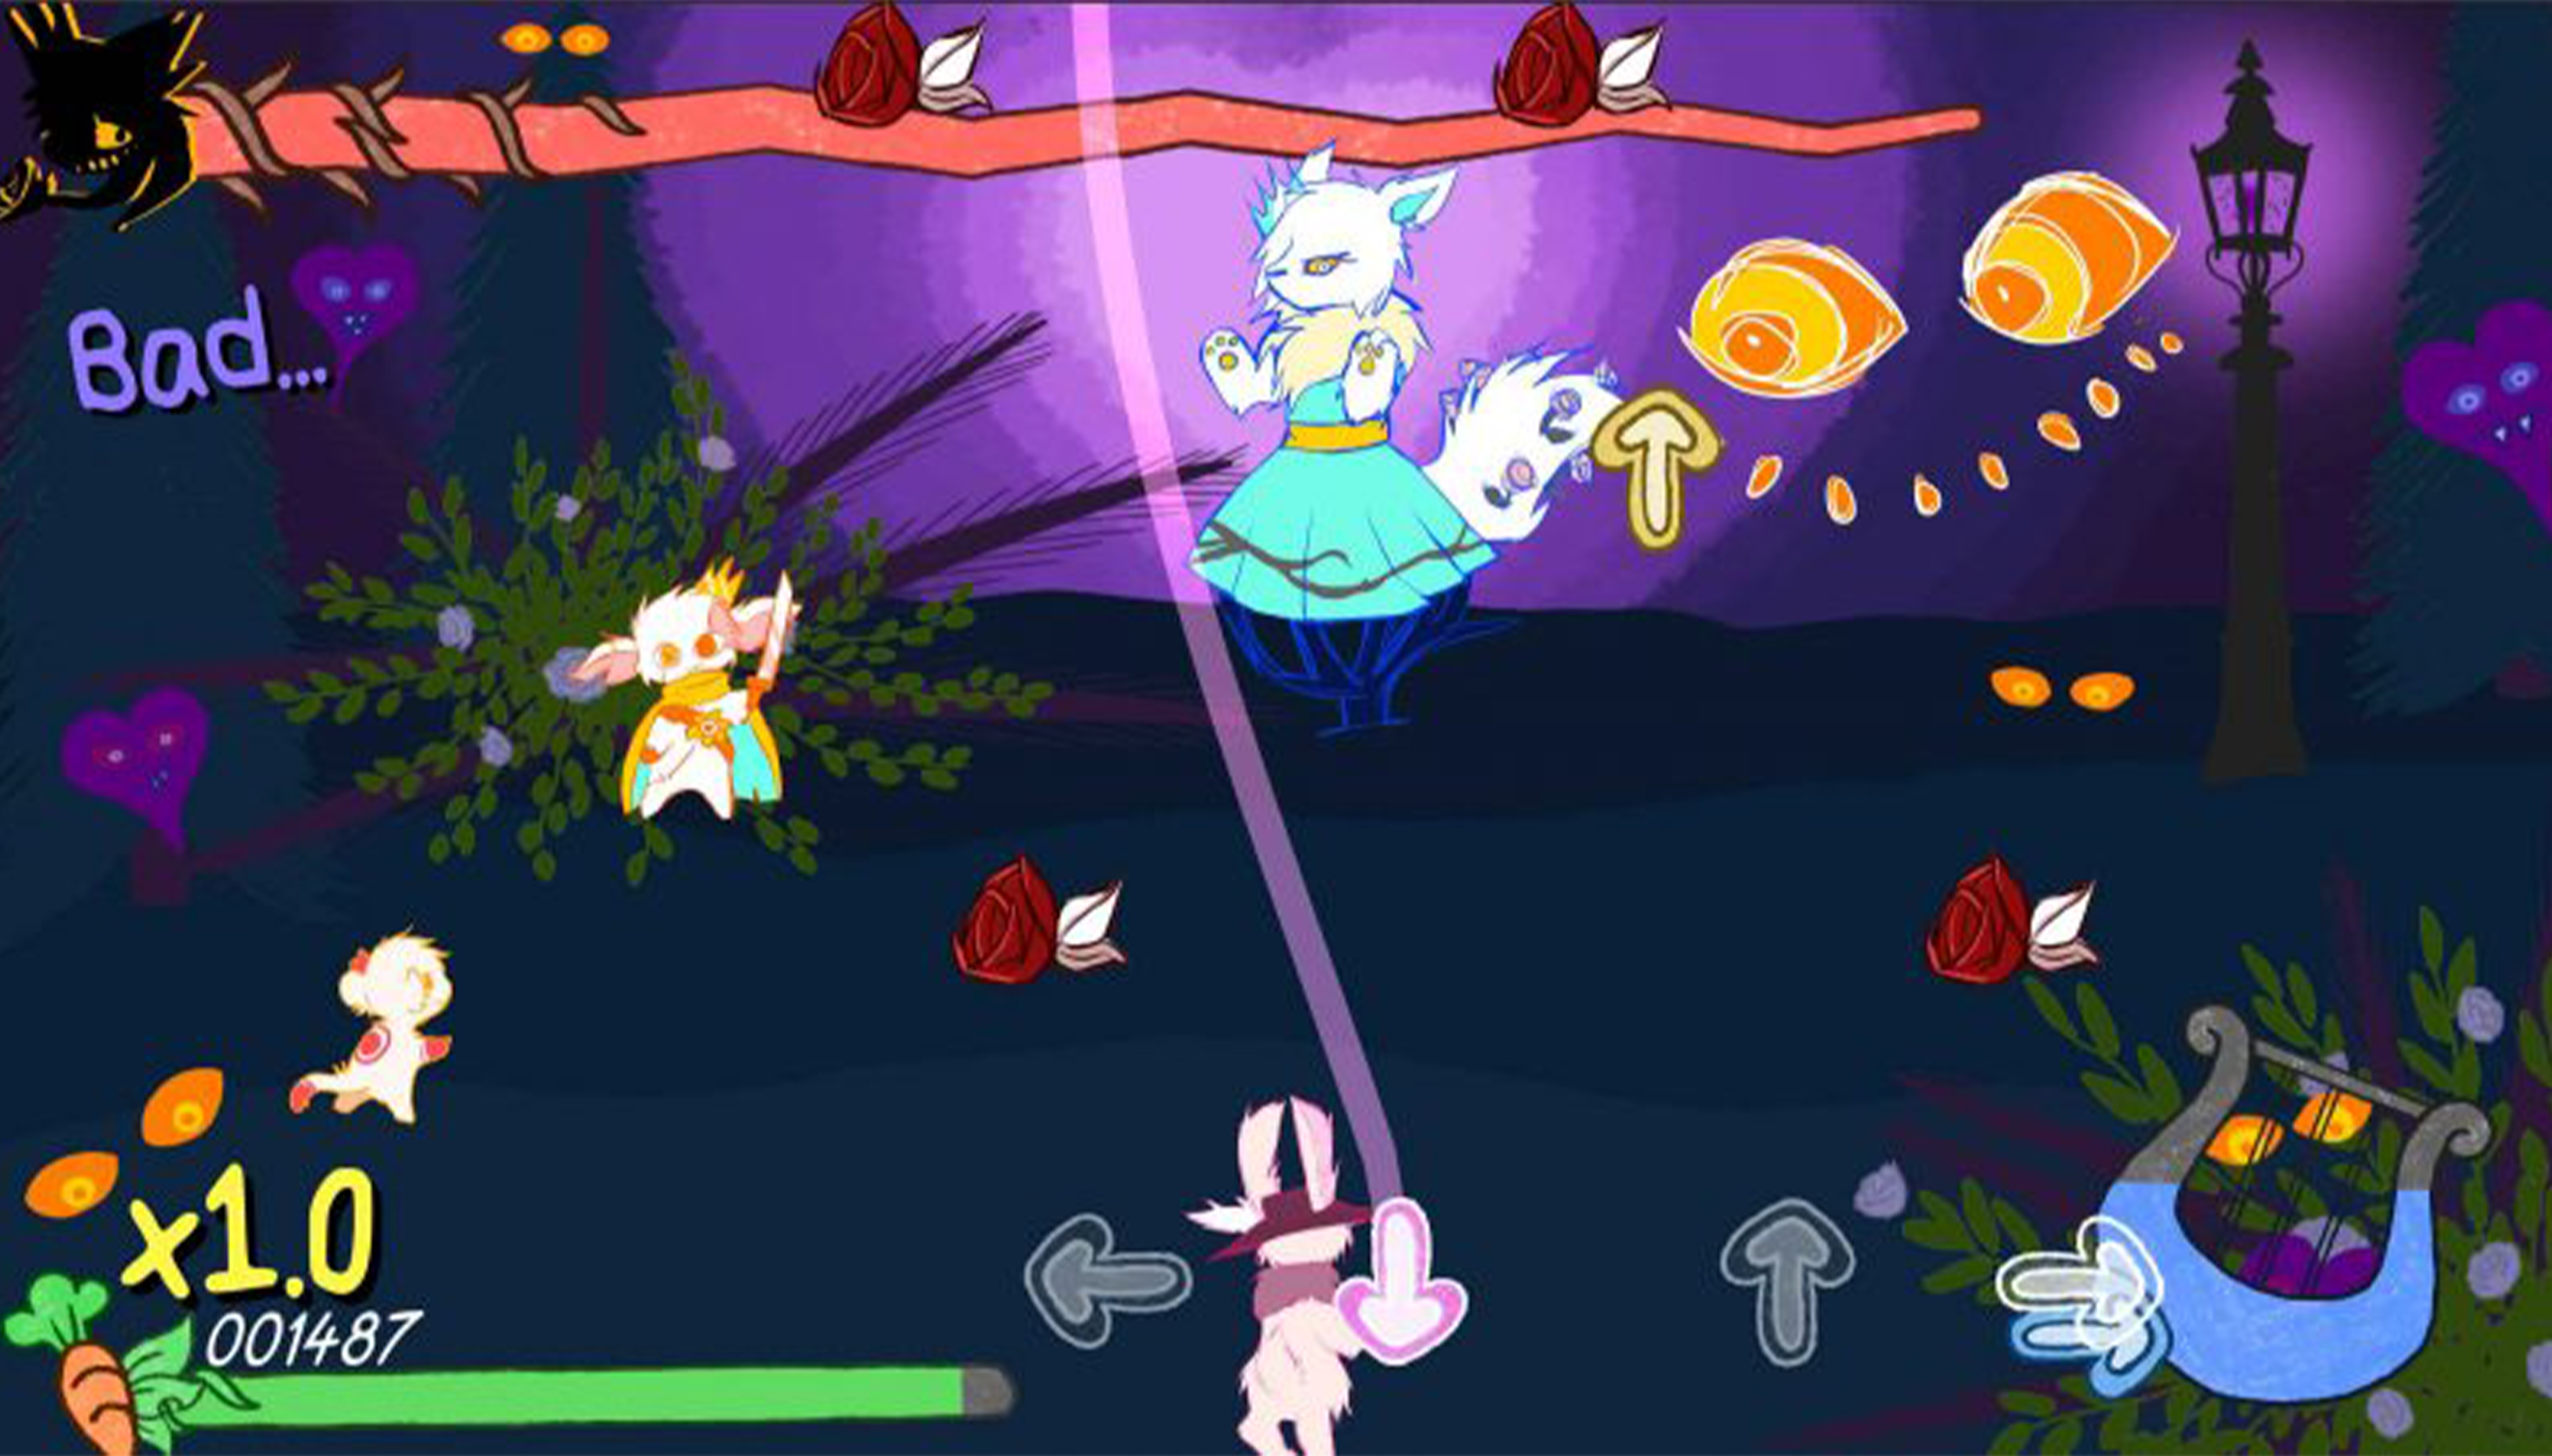 Image from student game